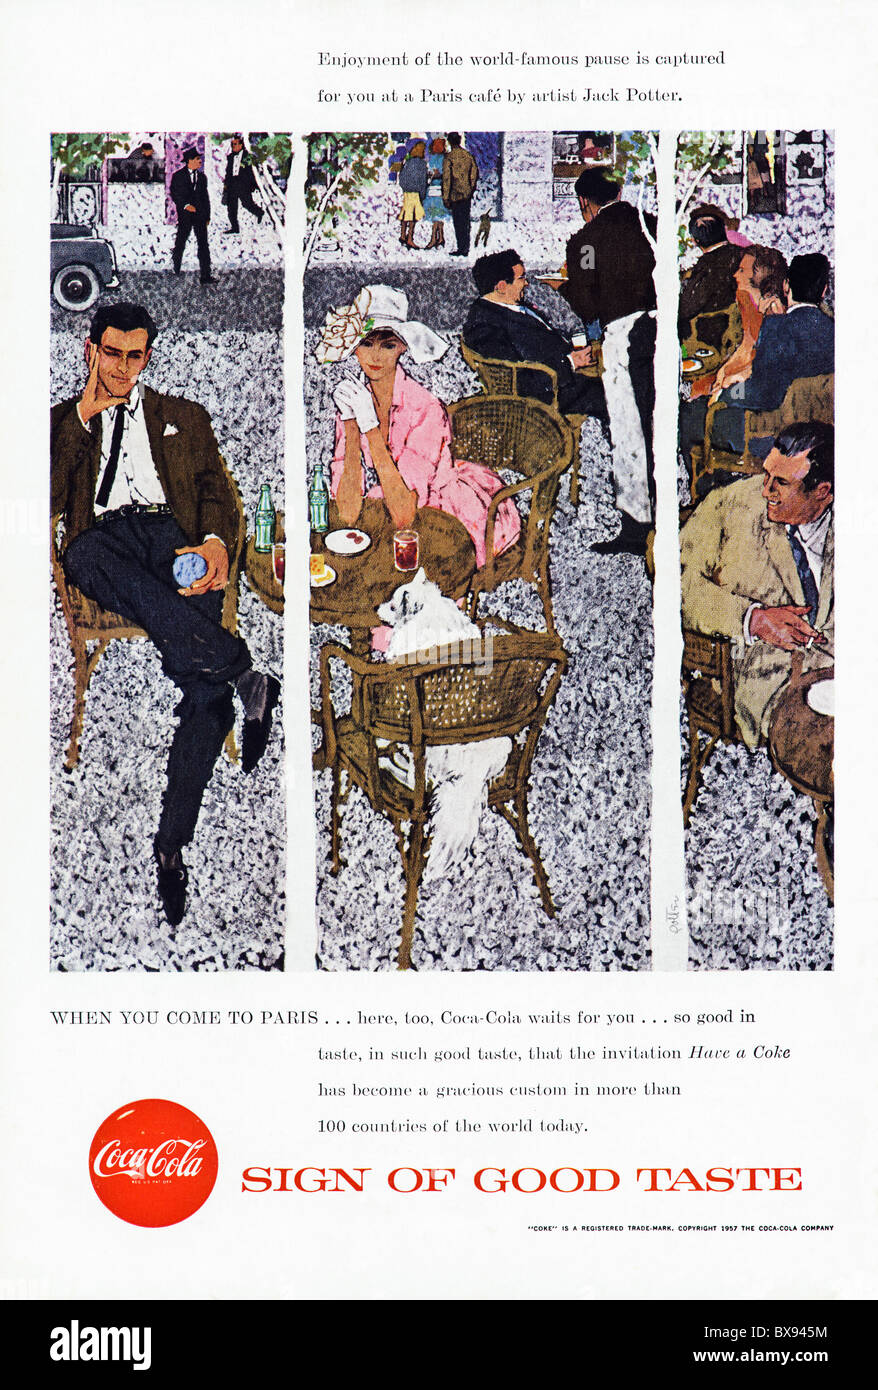 Classic Coca Cola colour advert featuring painting of Paris cafe by artist Jack Potter in American magazine circa - Stock Image